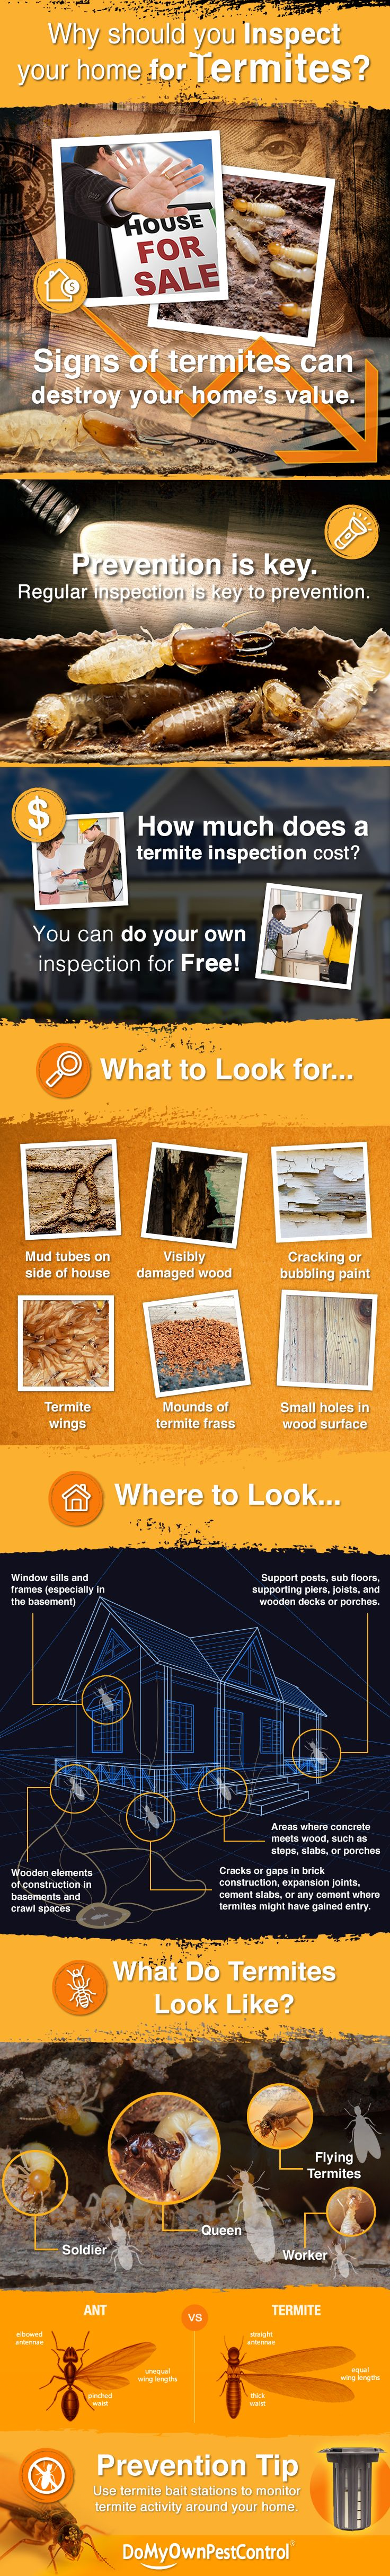 A termite infestation, or even just the signs of termites in or around your home can significantly damage your home's value! The best way to prevent termite damage is to inspect for them regularly and this graphic will show you how to do it yourself for free!